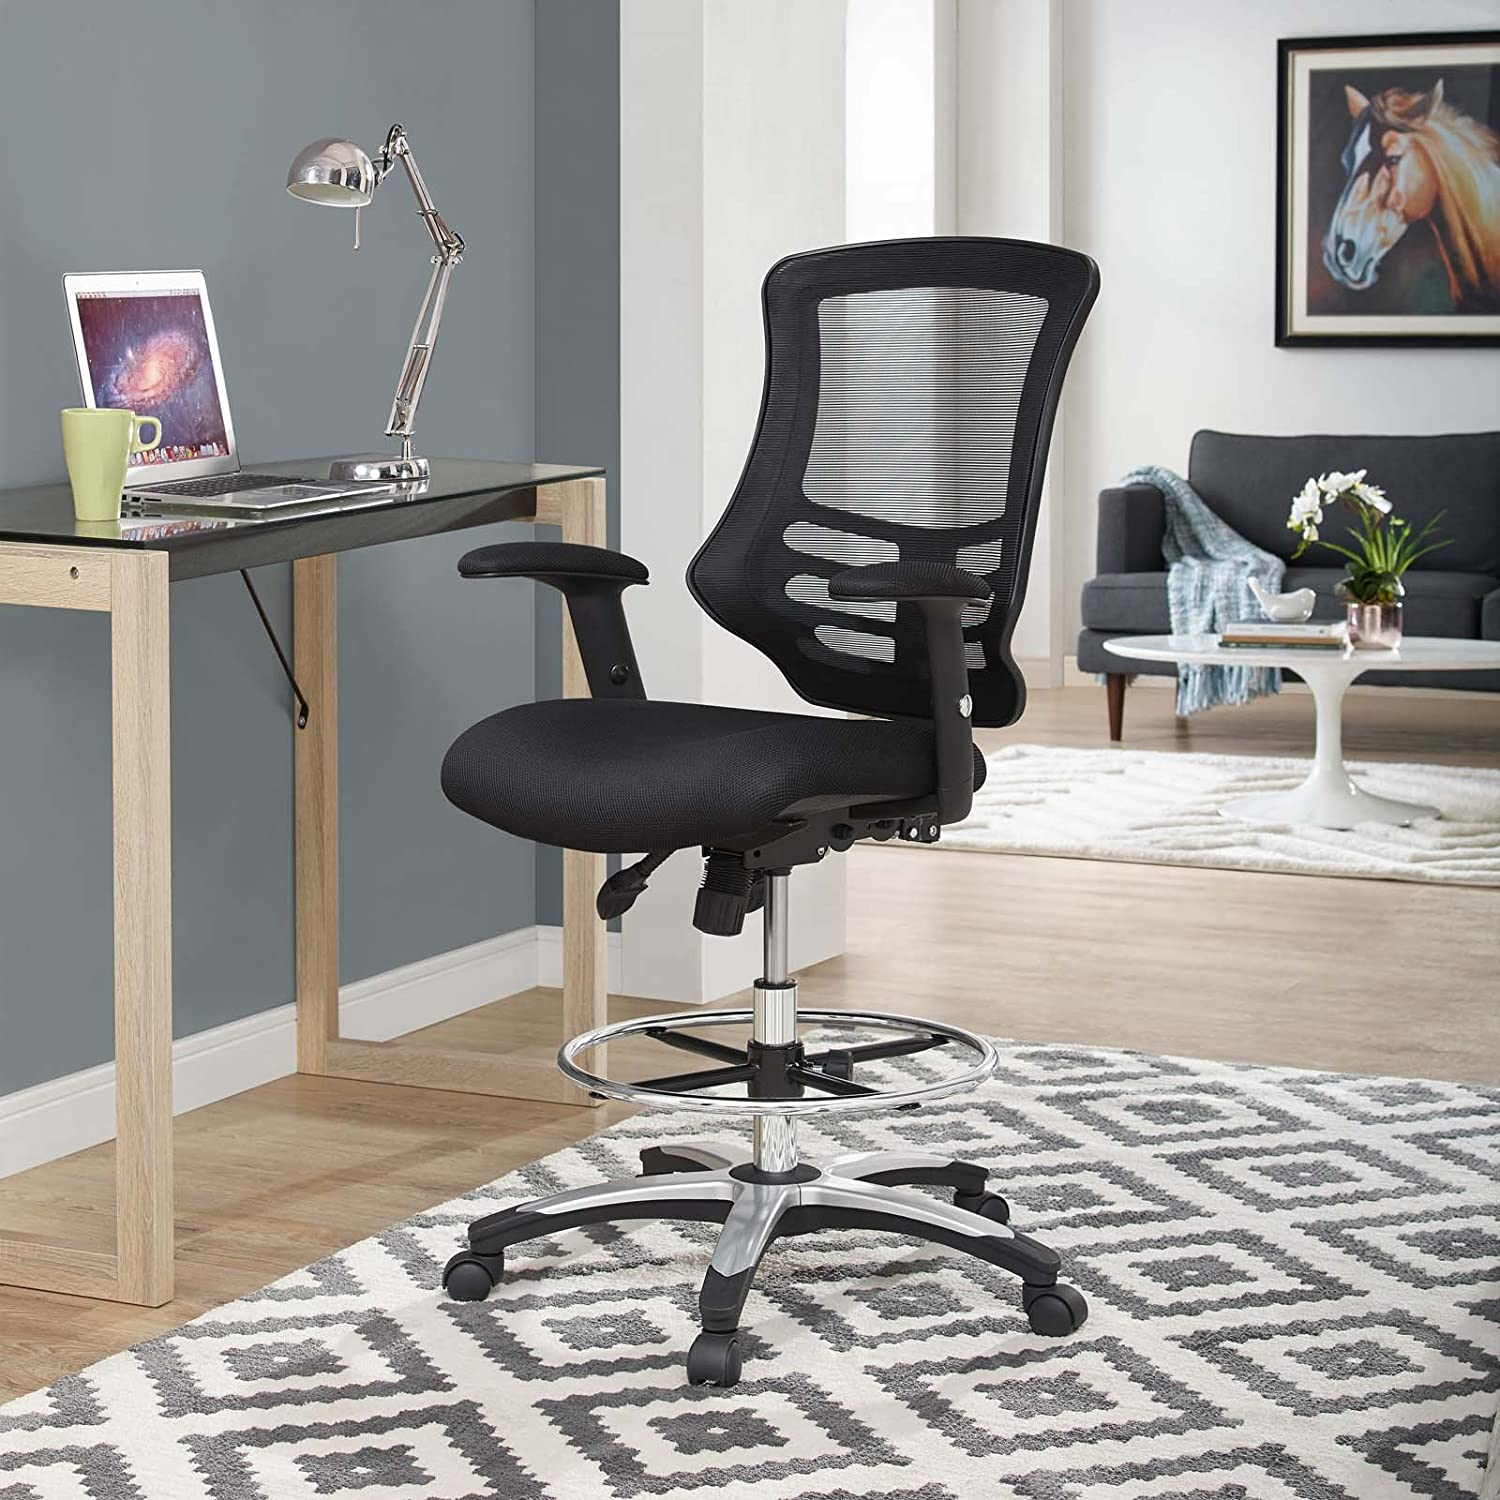 Modway Calibrate Mesh Drafting Black-Tall Office Chair for Adjustable Standing Desks